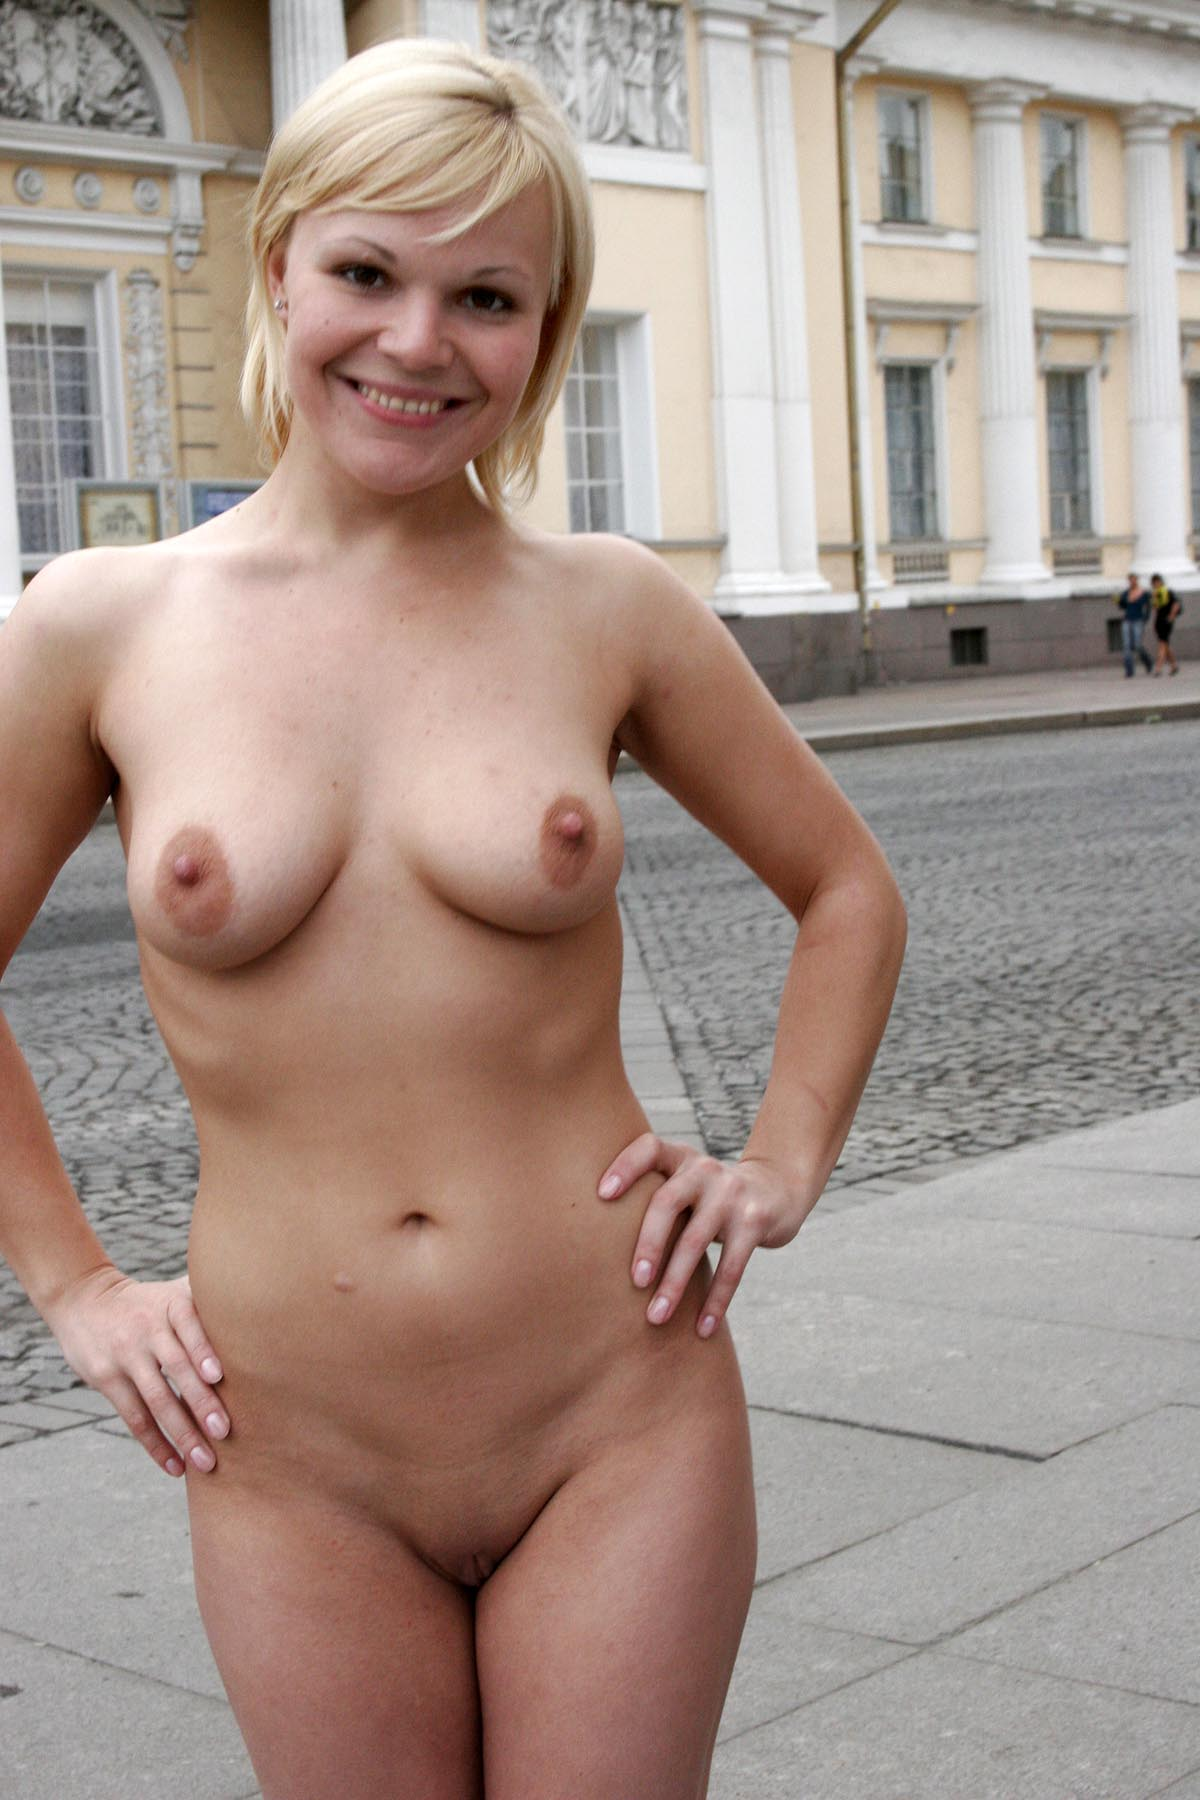 Short Haired Blonde Posing Naked At City Center  Russian -4761